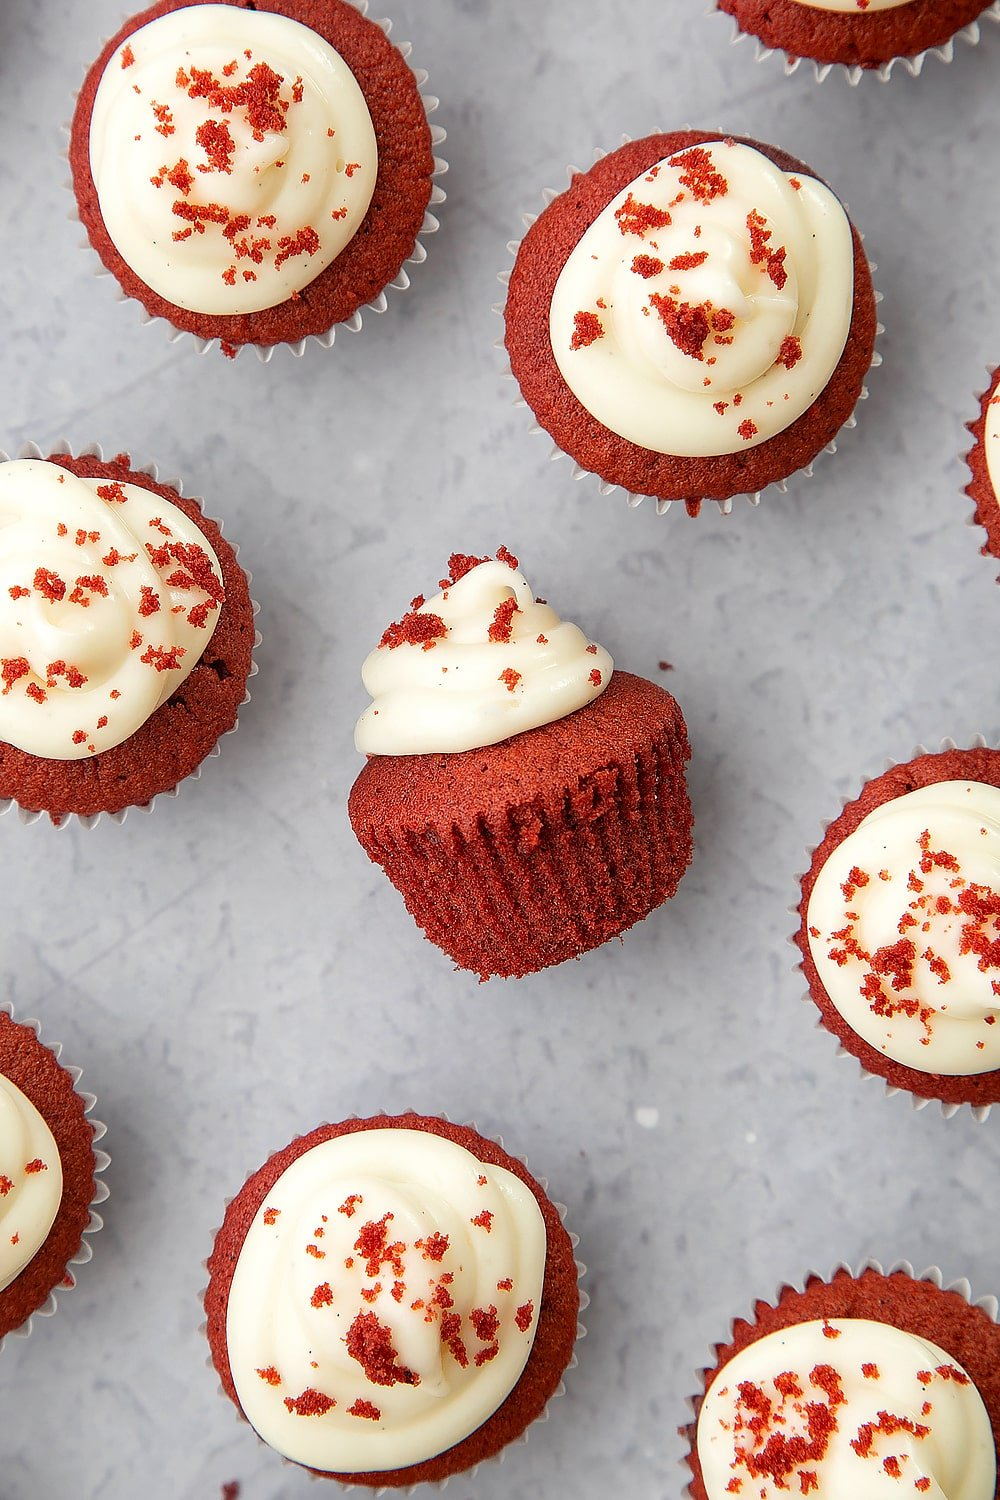 Overhead shot of mini red velvet cupcakes with cream cheese frosting.